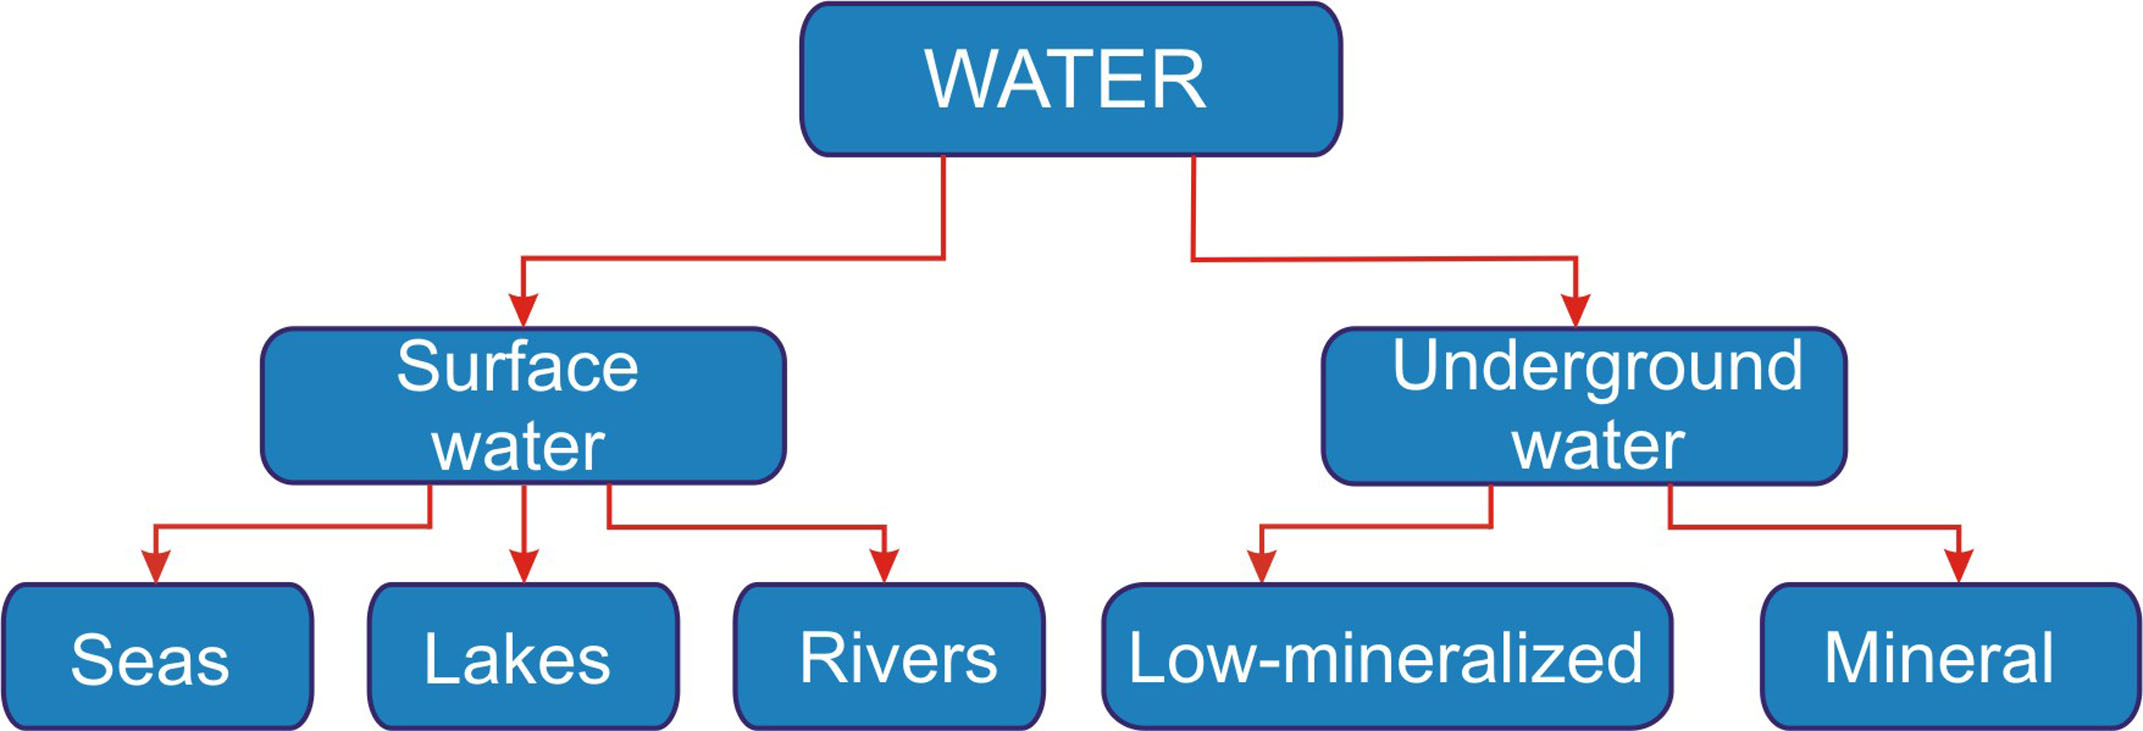 Nmw Water Classification